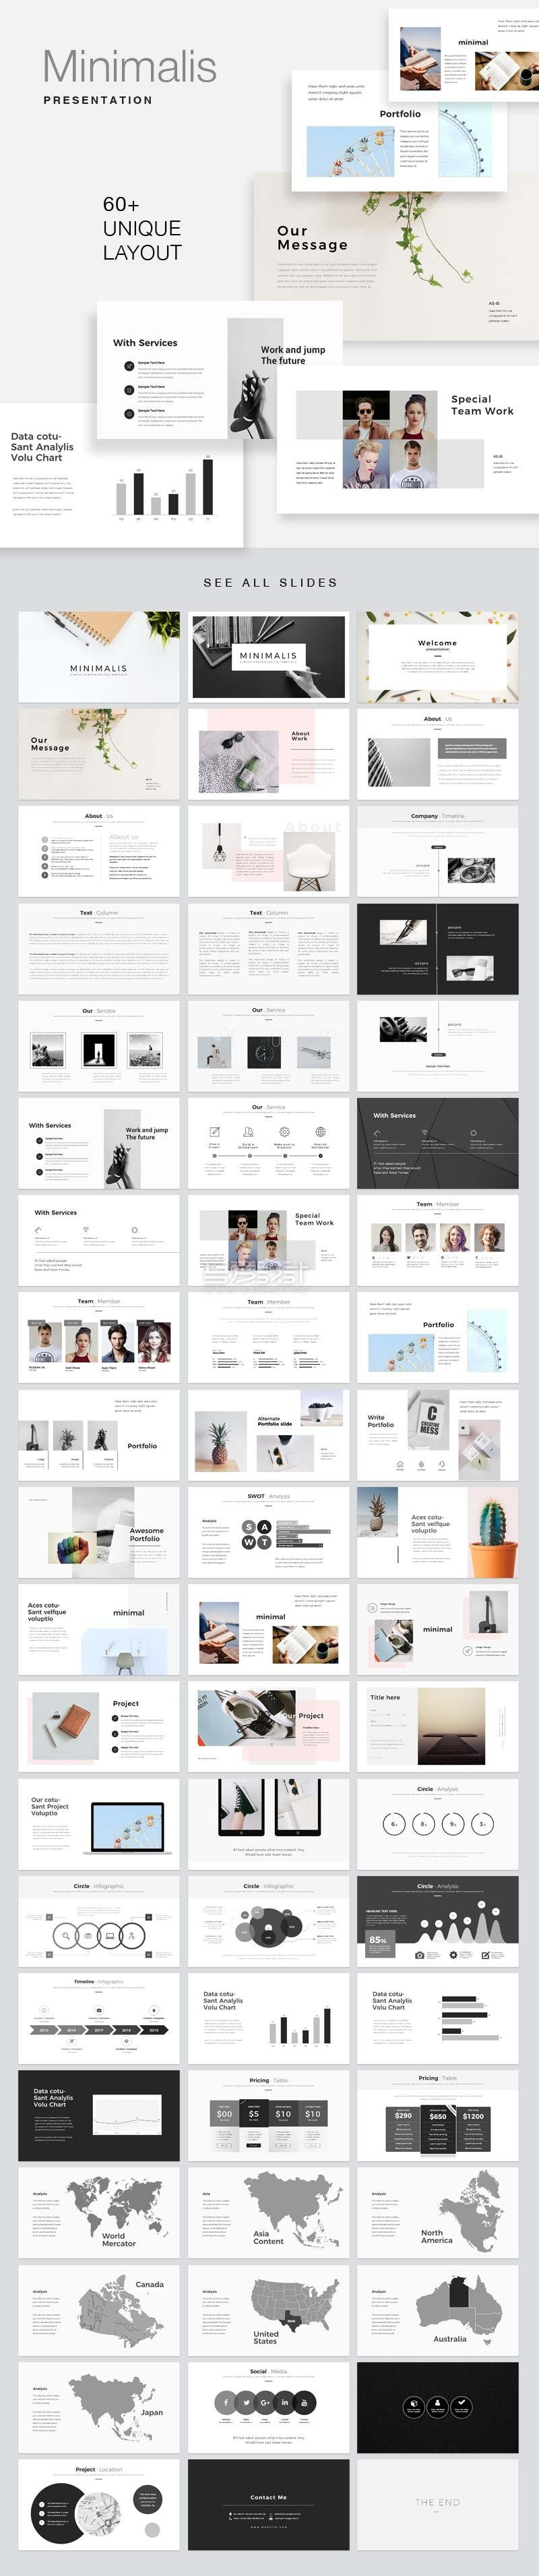 minimalis-creative-powerpoint-1630-preview_a10